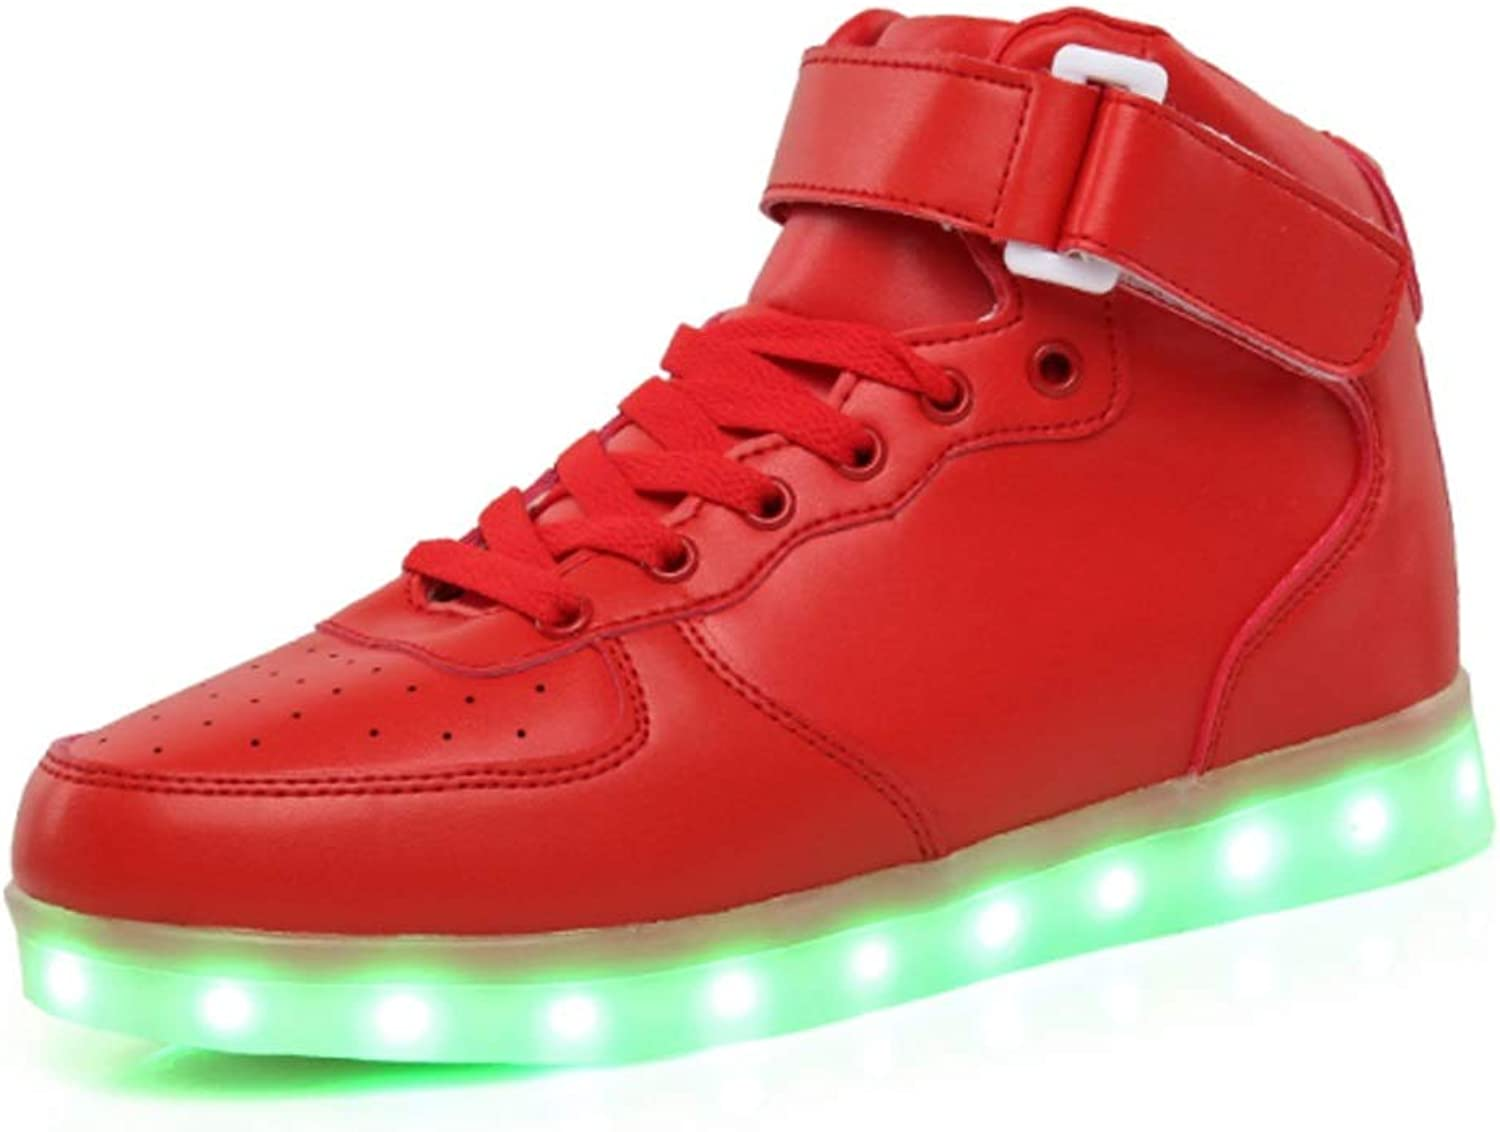 Neutral Adult High Help USB Charging LED Light shoes Fashion Sports shoes Men's Women's (color   C, Size   38EU)